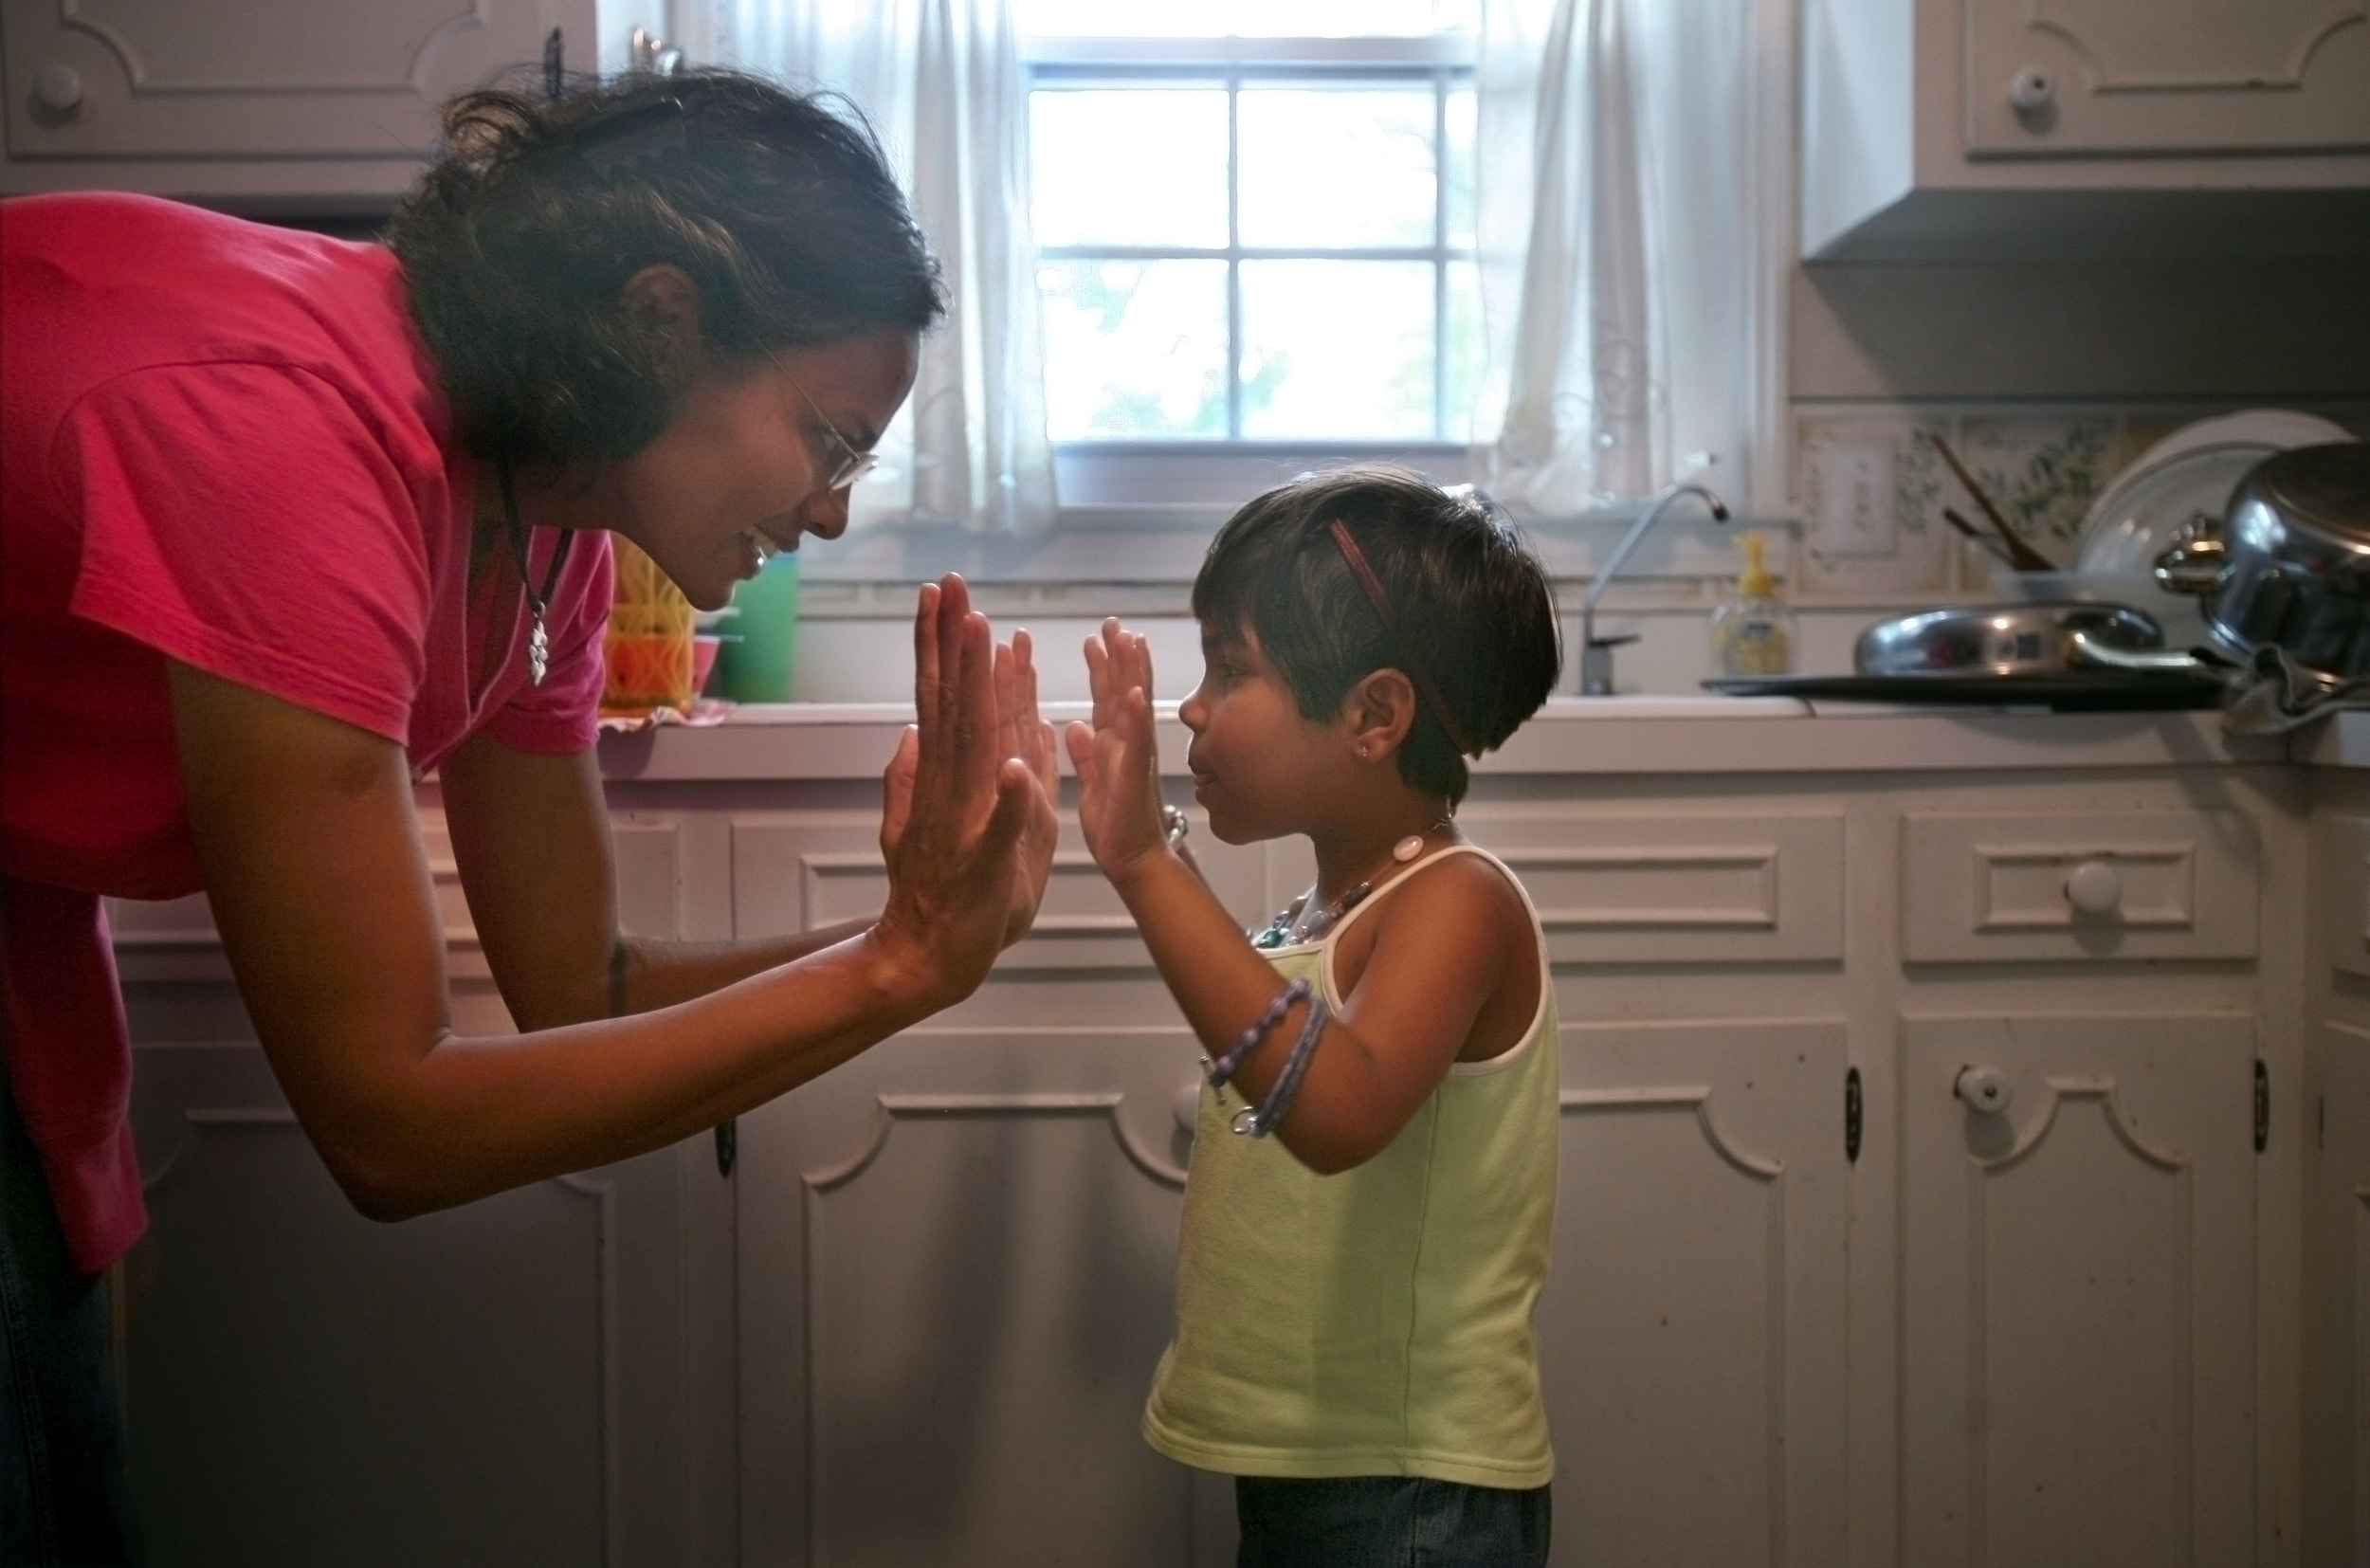 Karthi Masters gives Kajal a high five after she helped with the dishes Wednesday, May 30, 2007 in Franklin, Tenn. Kajal had developed a bond with Karthi and the Masters family.